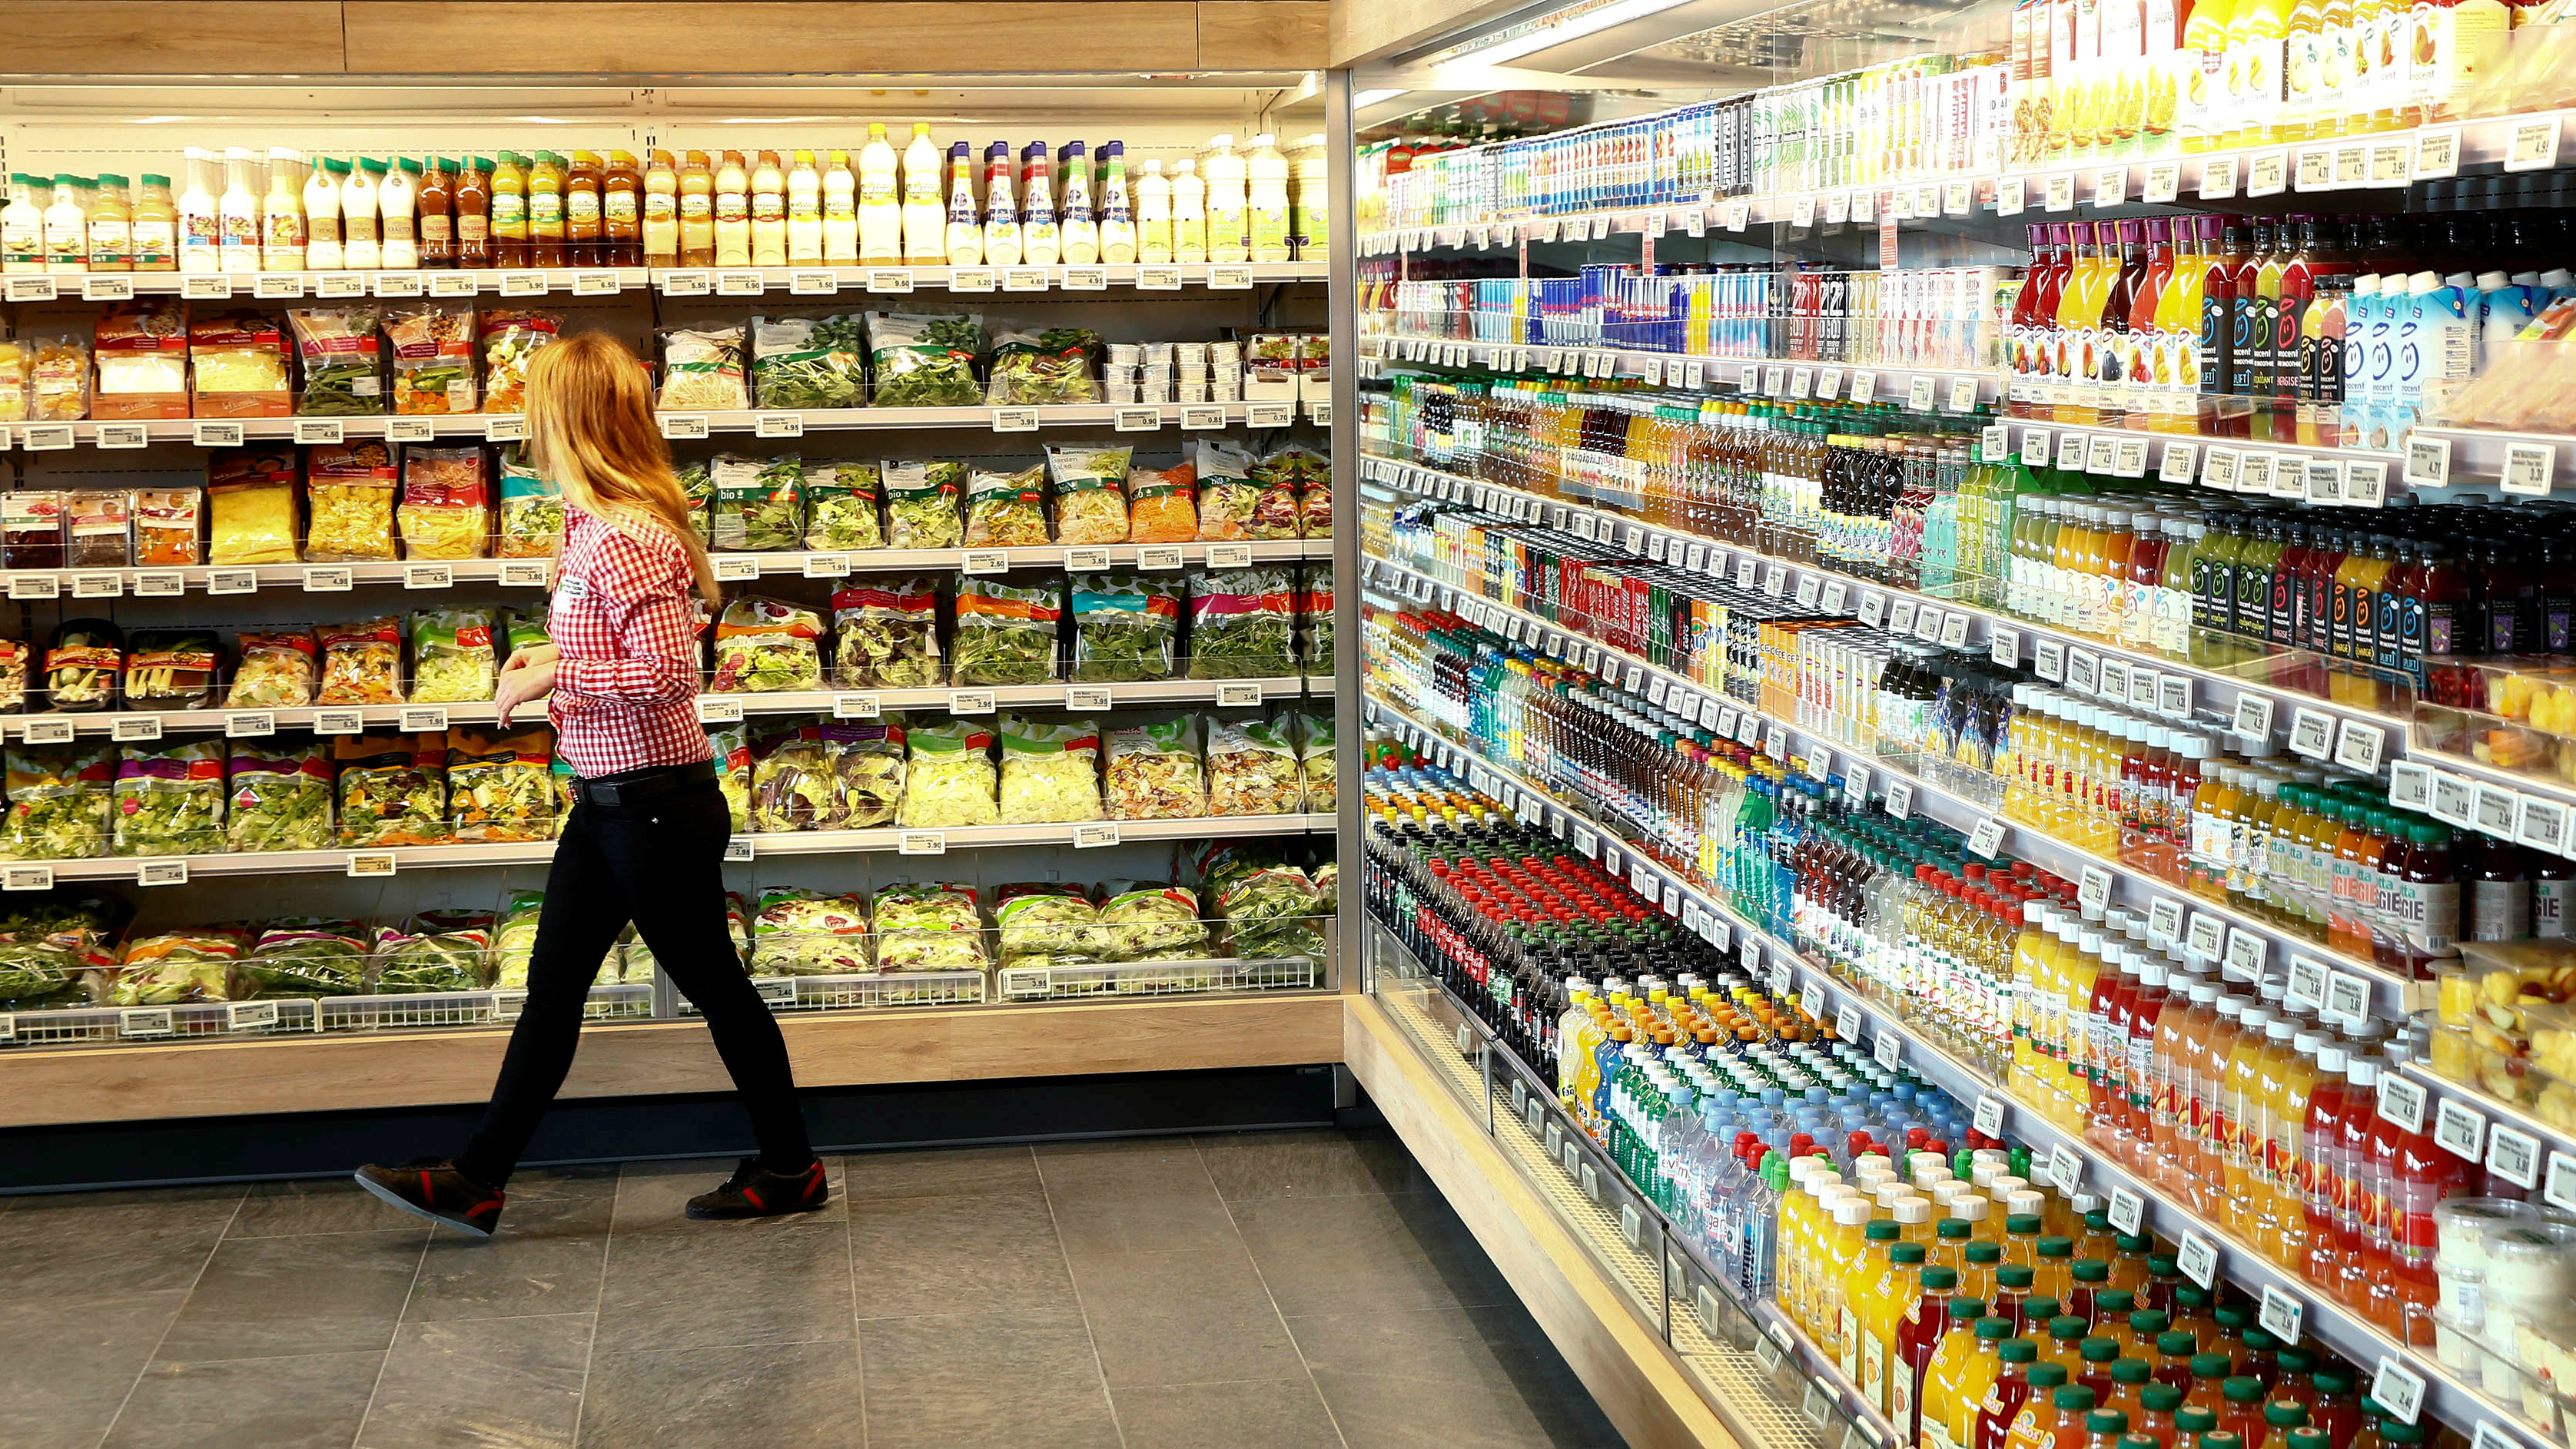 Kraft Heinz Khc Wants To Buy Unilever Un To Create To Create The